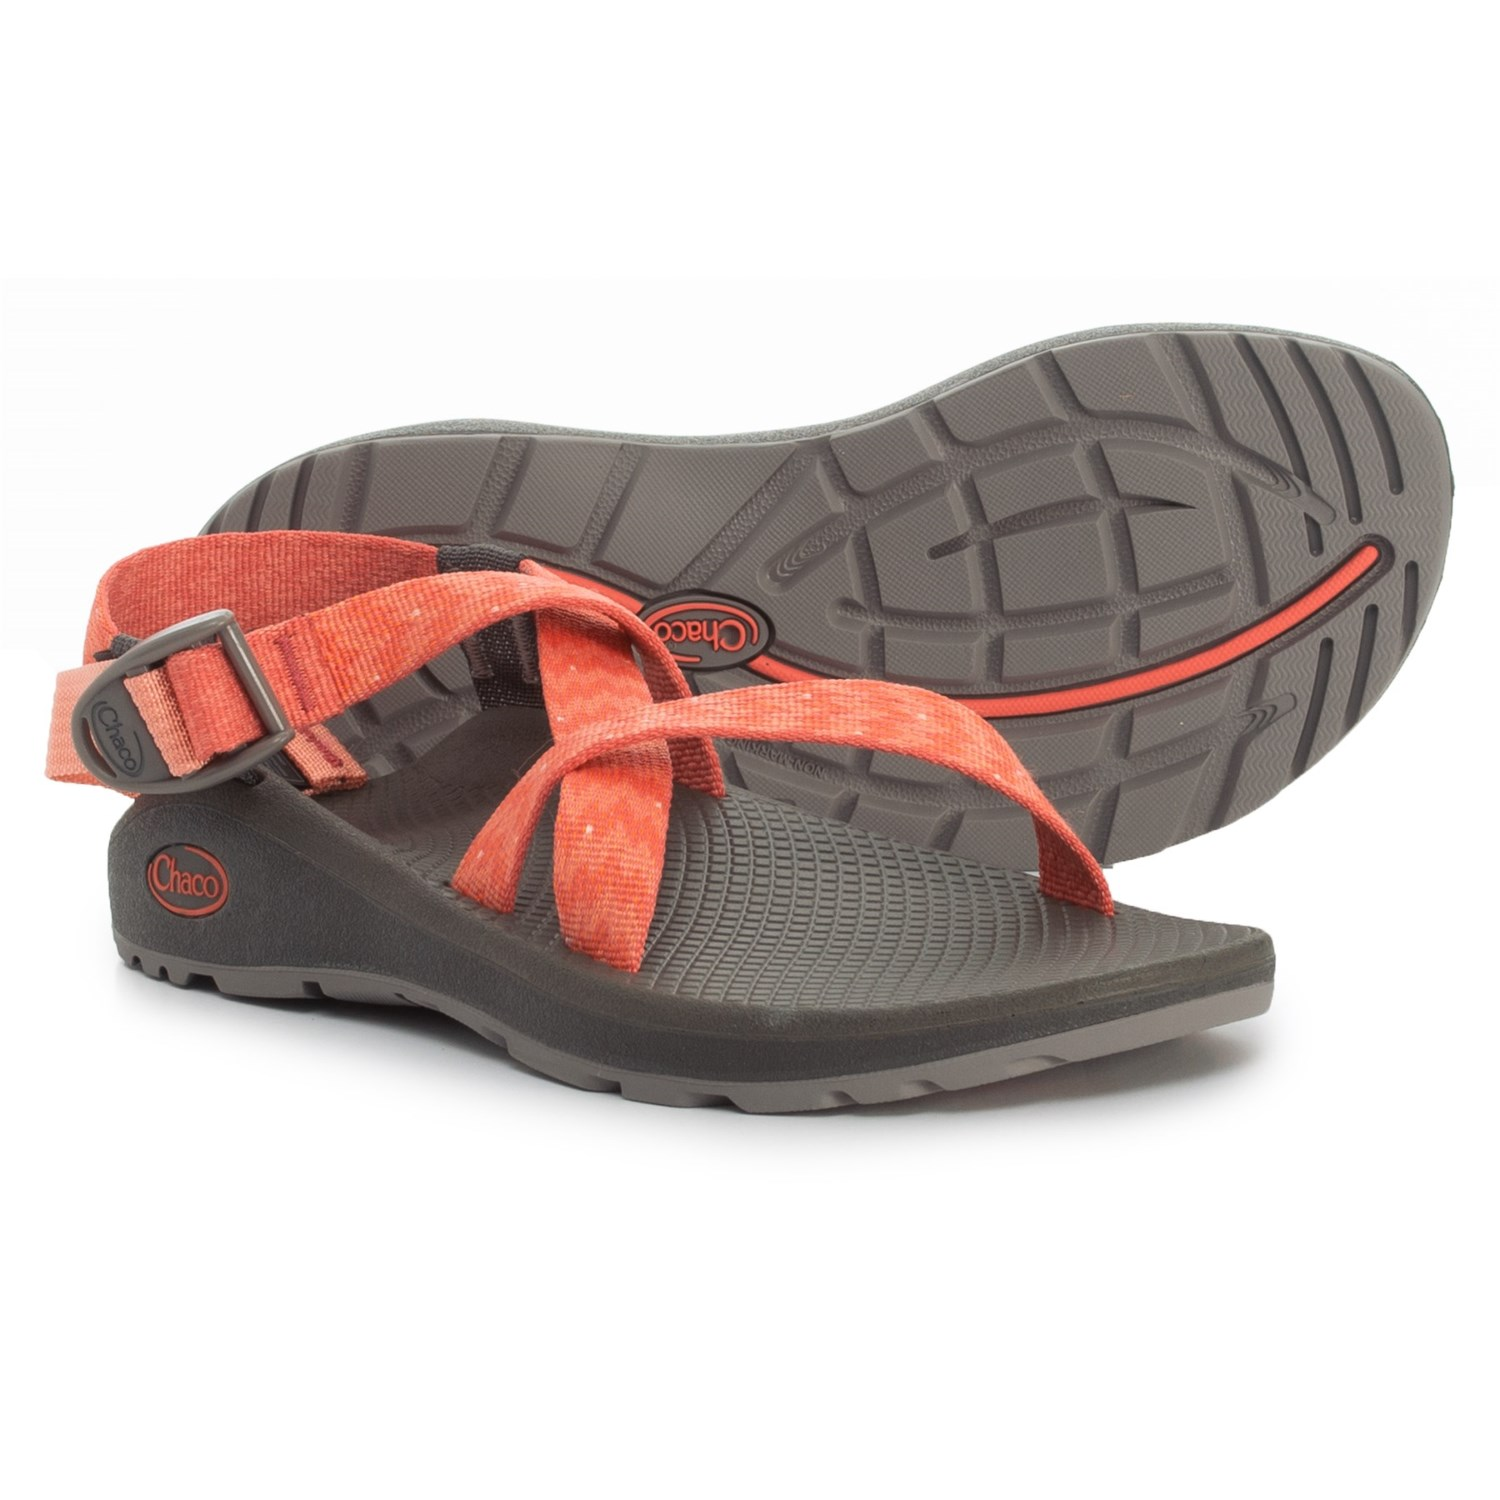 605ea2bae08a Chaco Z/Cloud Sandals (For Women) - Save 40%